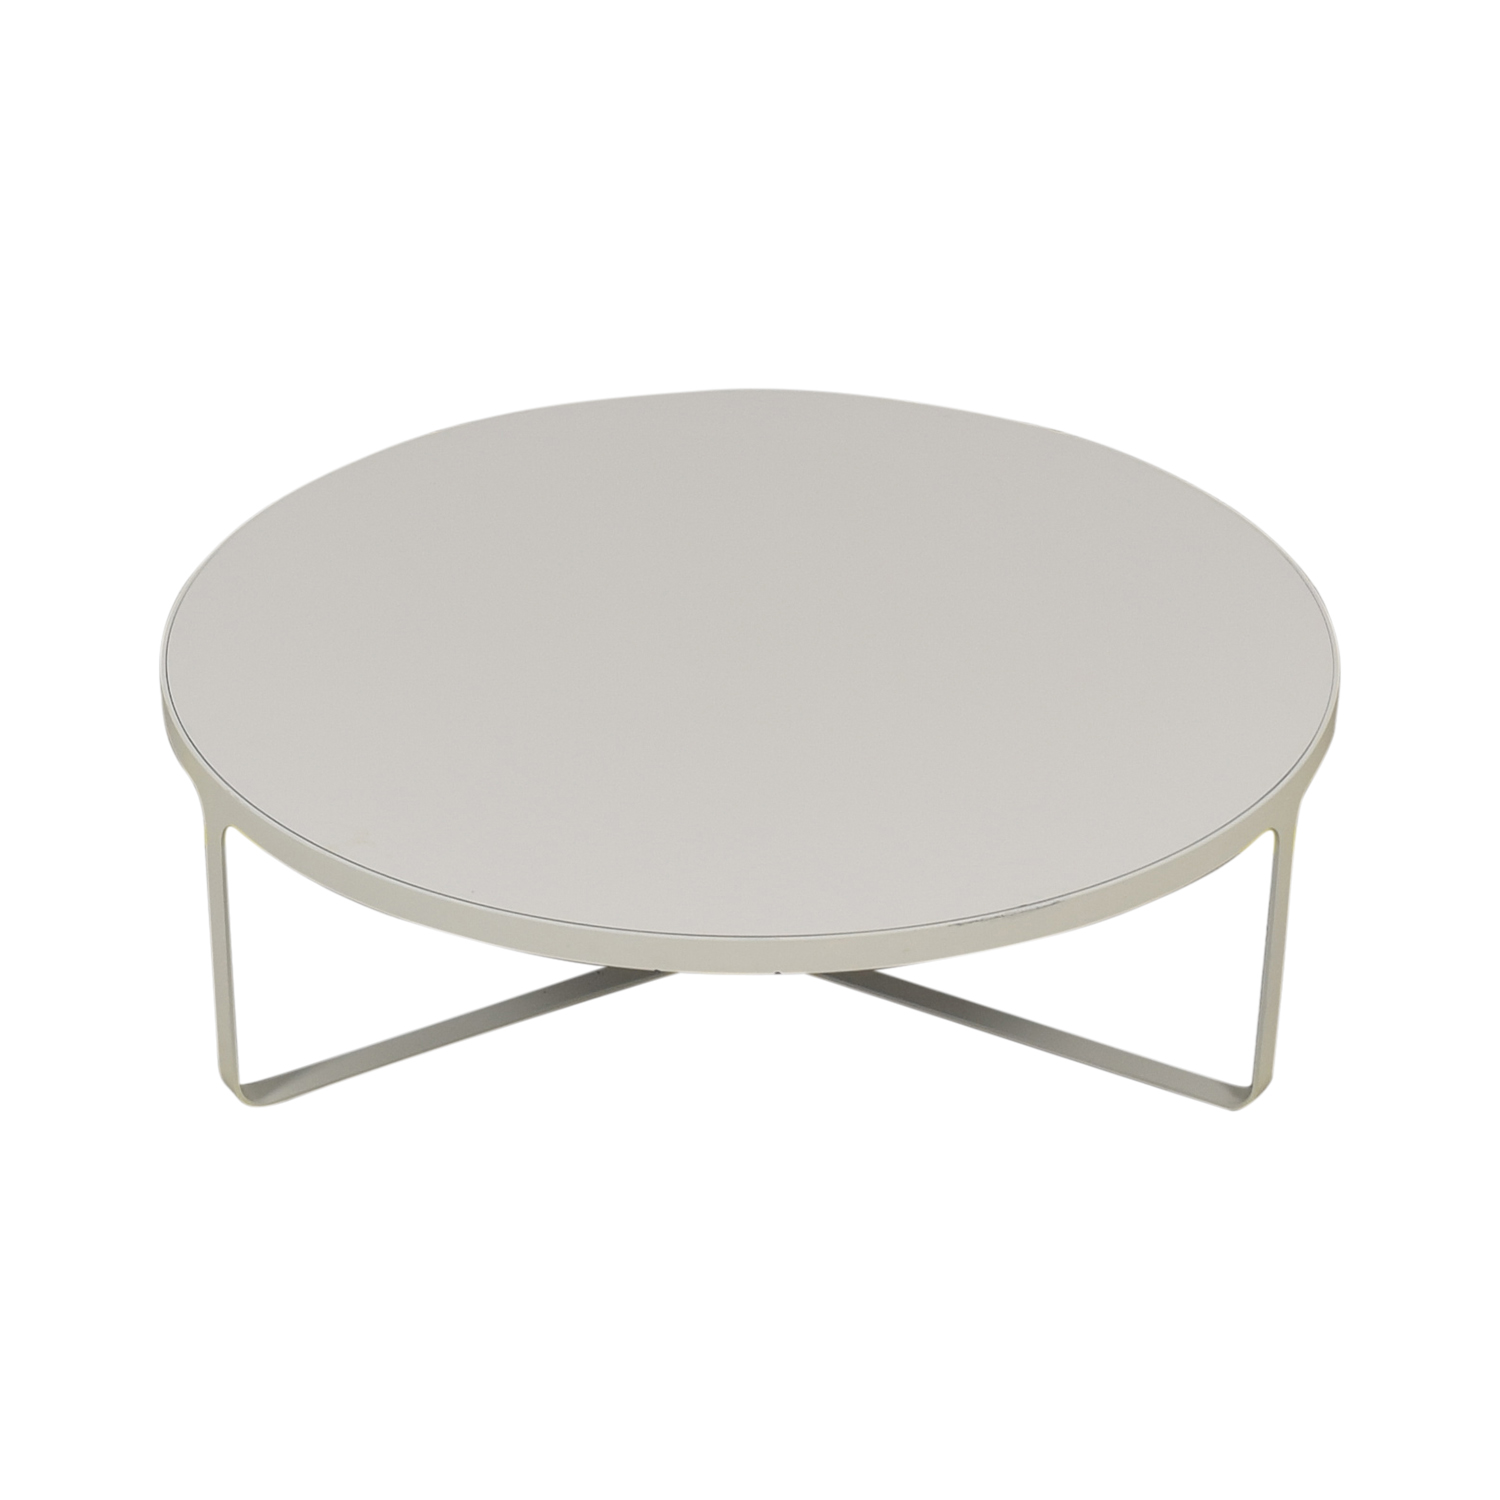 buy Design Within Reach Design Within Reach Cage Coffee Table online